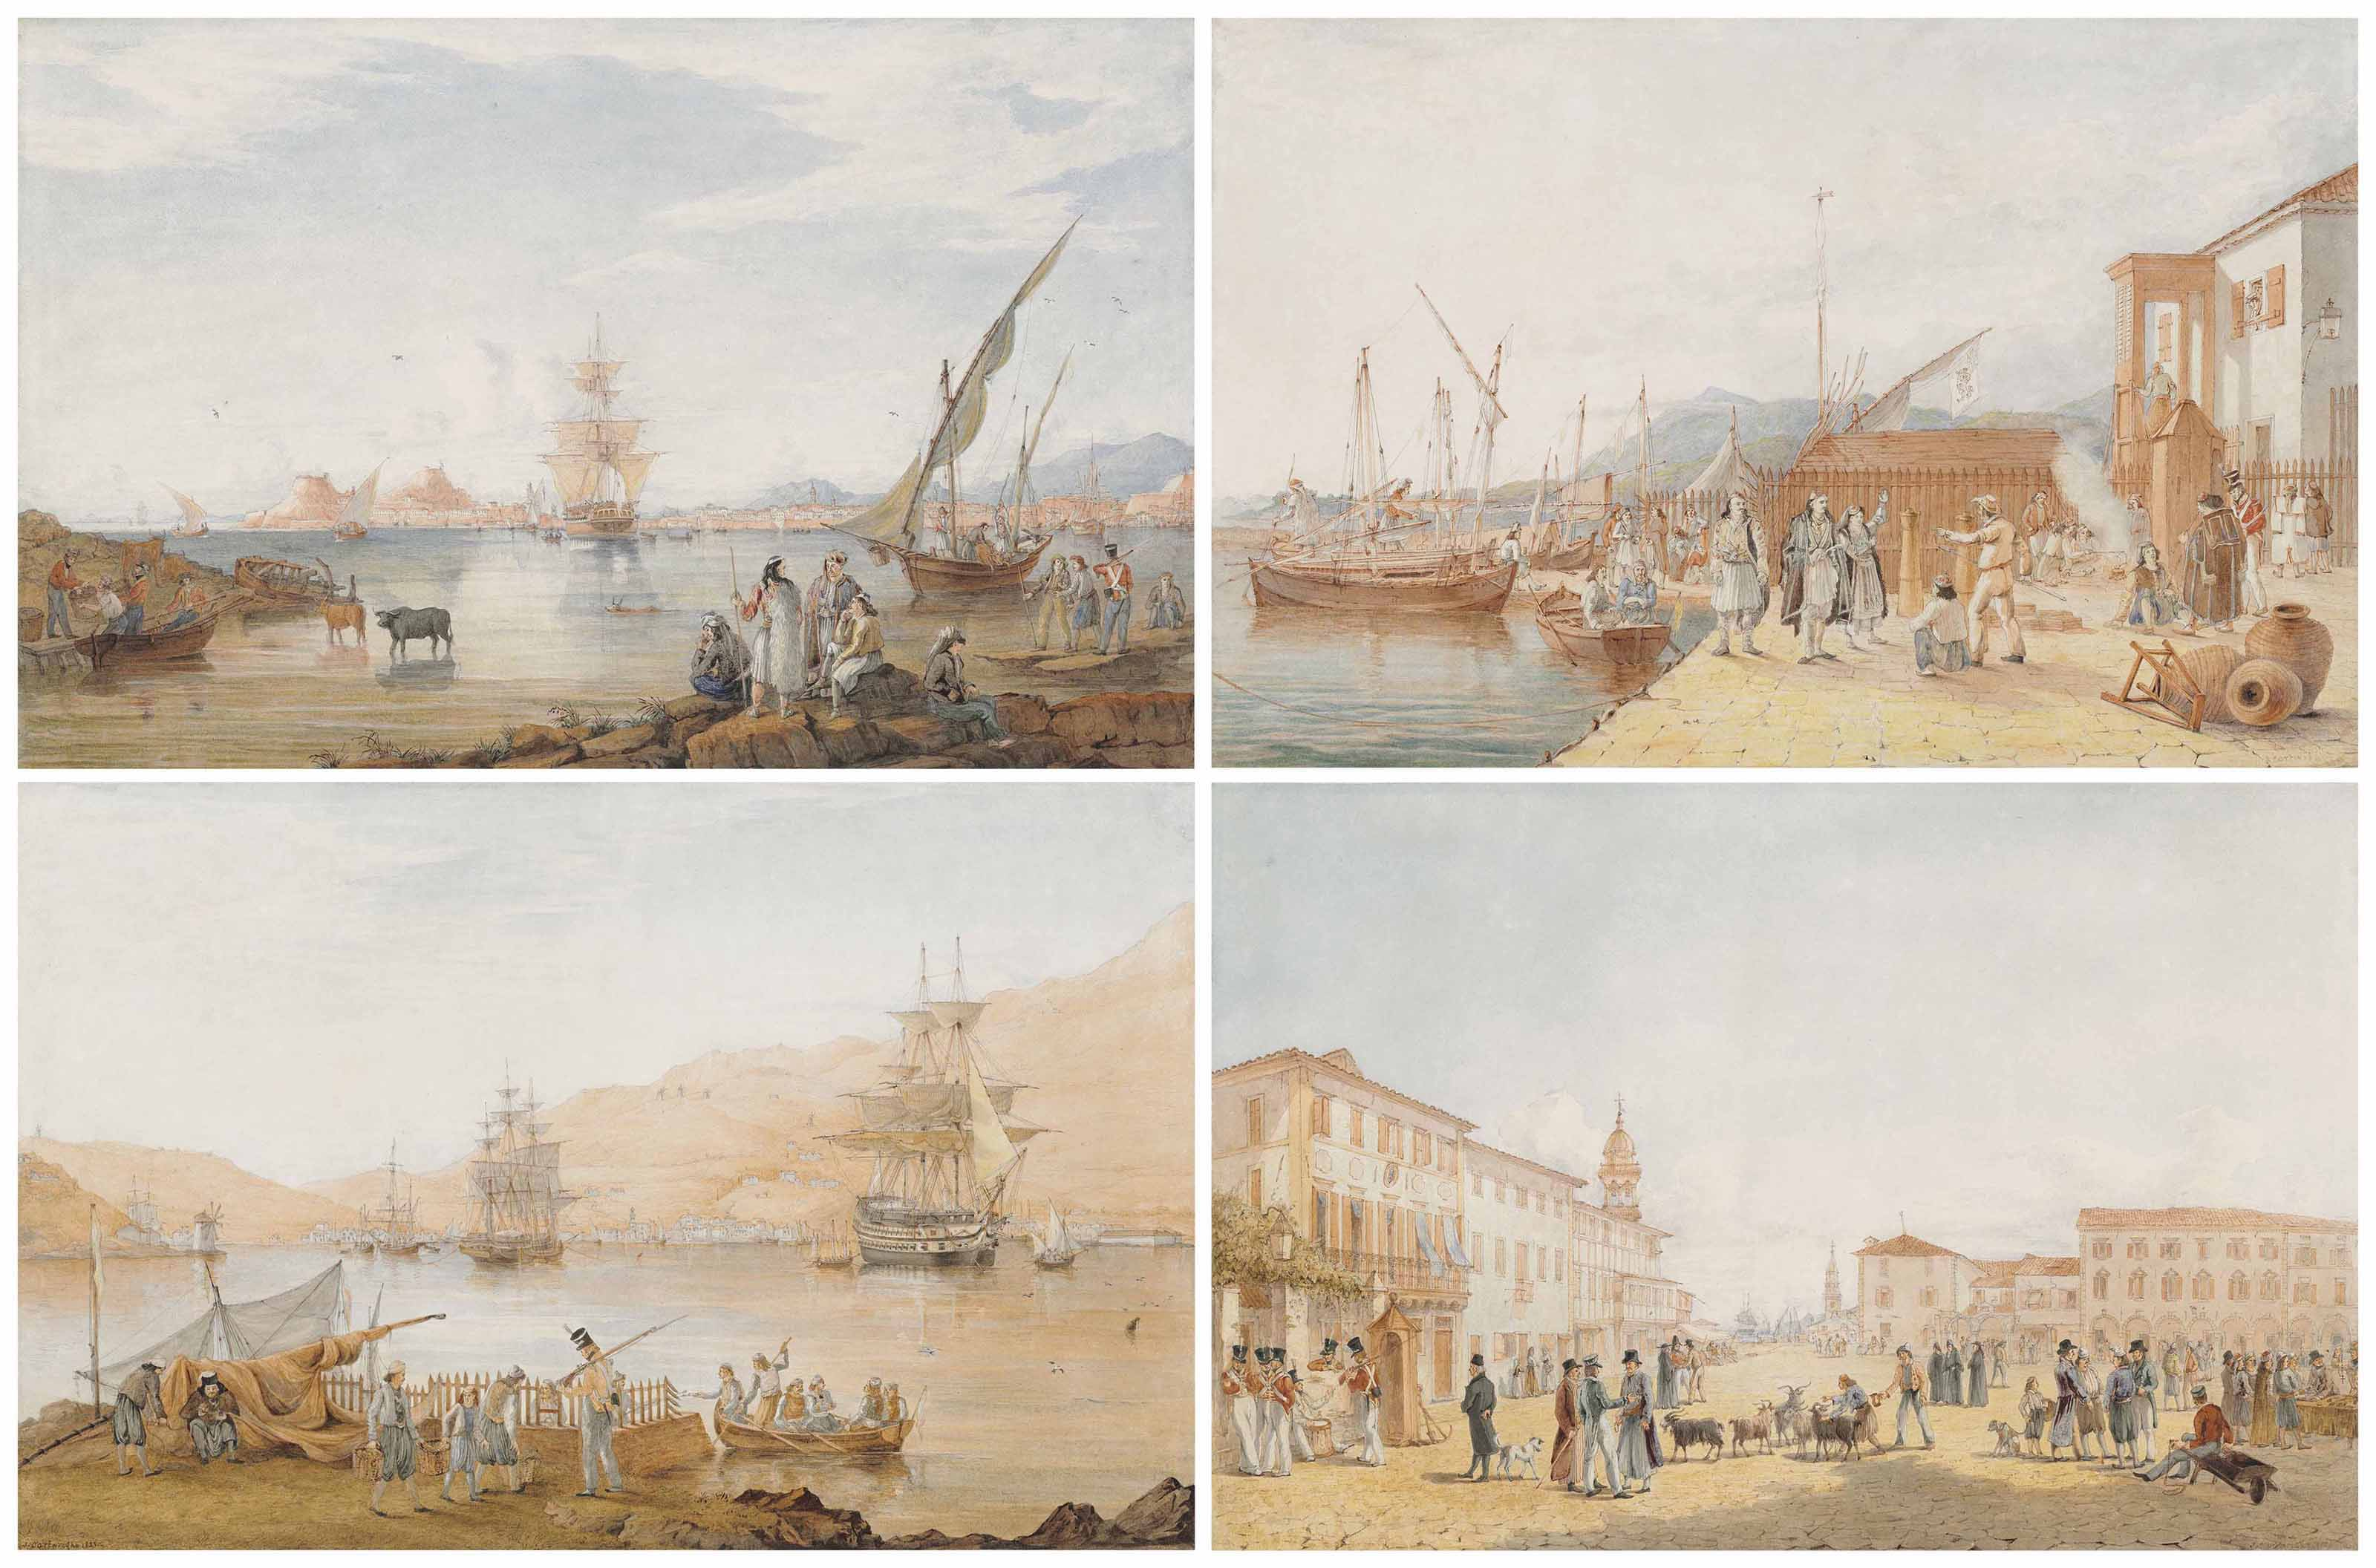 Views in the Ionian Islands: The Town, Citadel, and the Harbour of Corfu, from the Island of Vido.Town; The Sanita, or Health Office, at Santa Maura; View of the Town and Harbour of Vathi, in Ithaca; and The Piazza of Saint Mark, in Zante